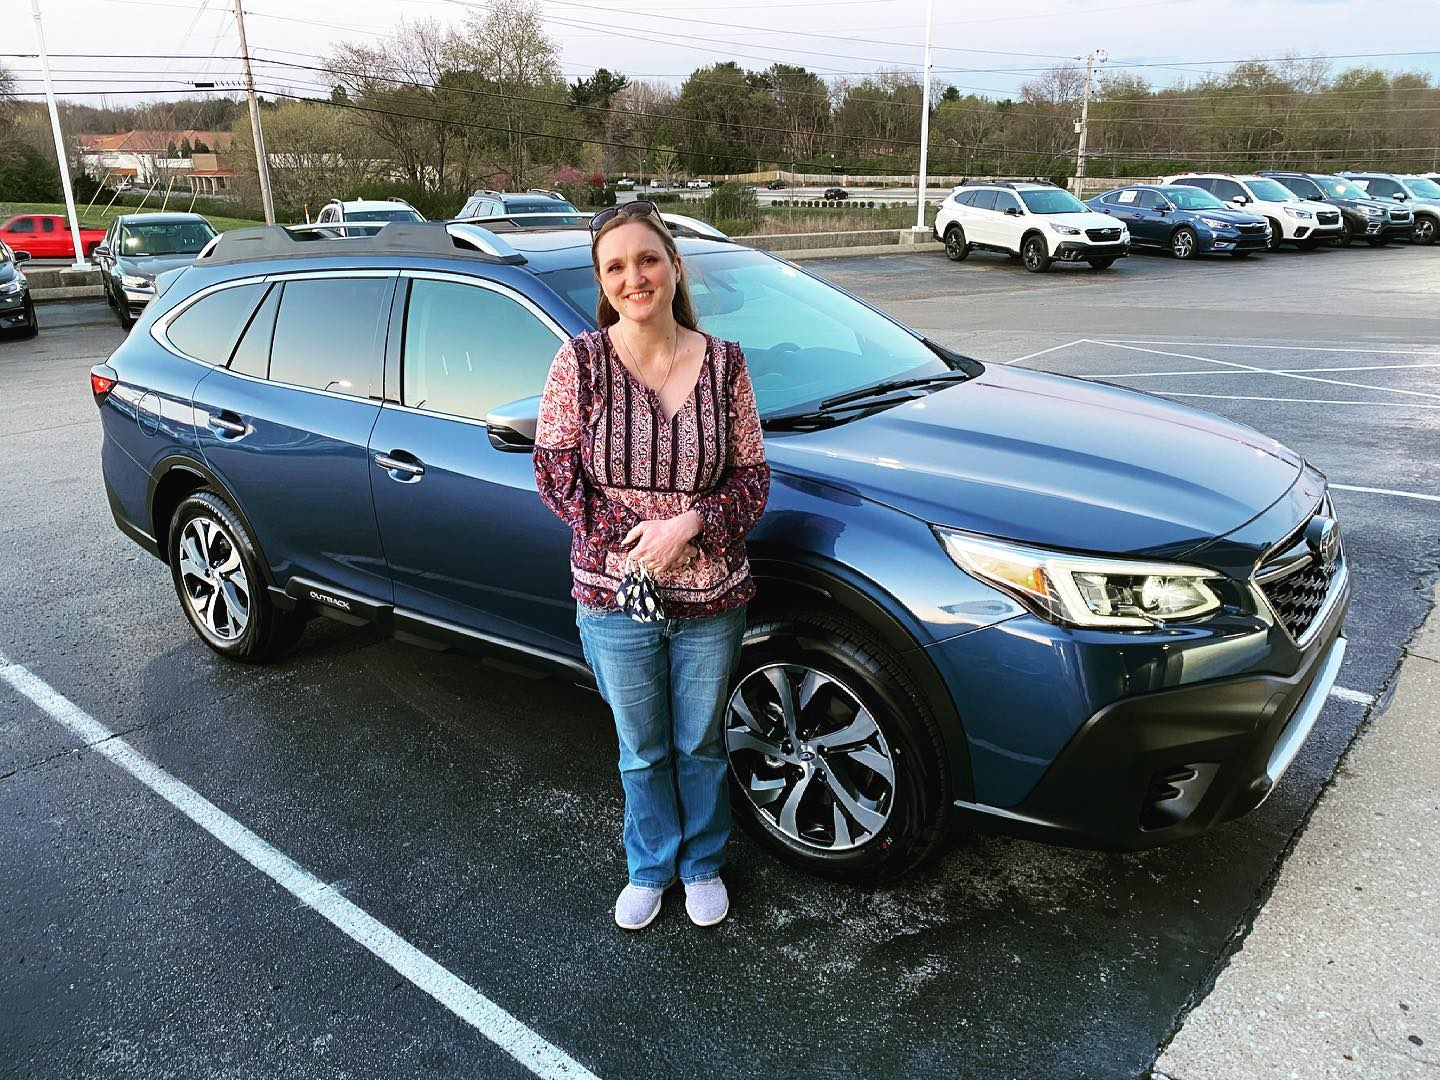 First ever new car for @oliviaagee ... a 2021 Subaru Outback in Abyss Blue Pearl. She's pretty excited. #family #Subaru #subaruoutback